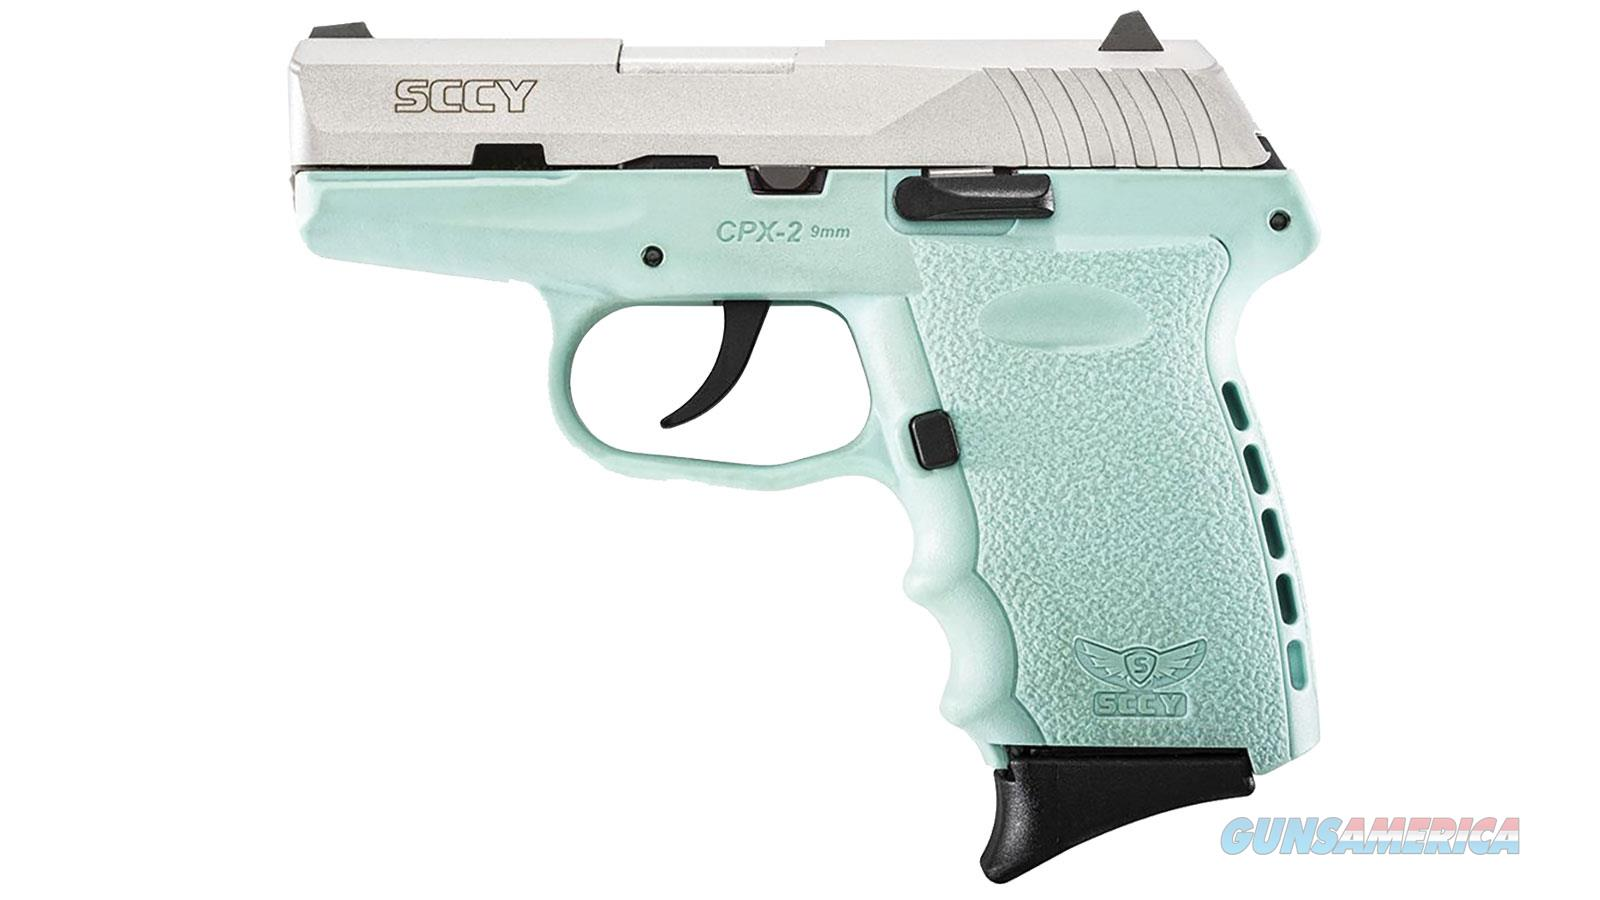 SCCY 9MM Pistol Sky Blue and Stainless Finish  Guns > Pistols > SCCY Pistols > CPX2